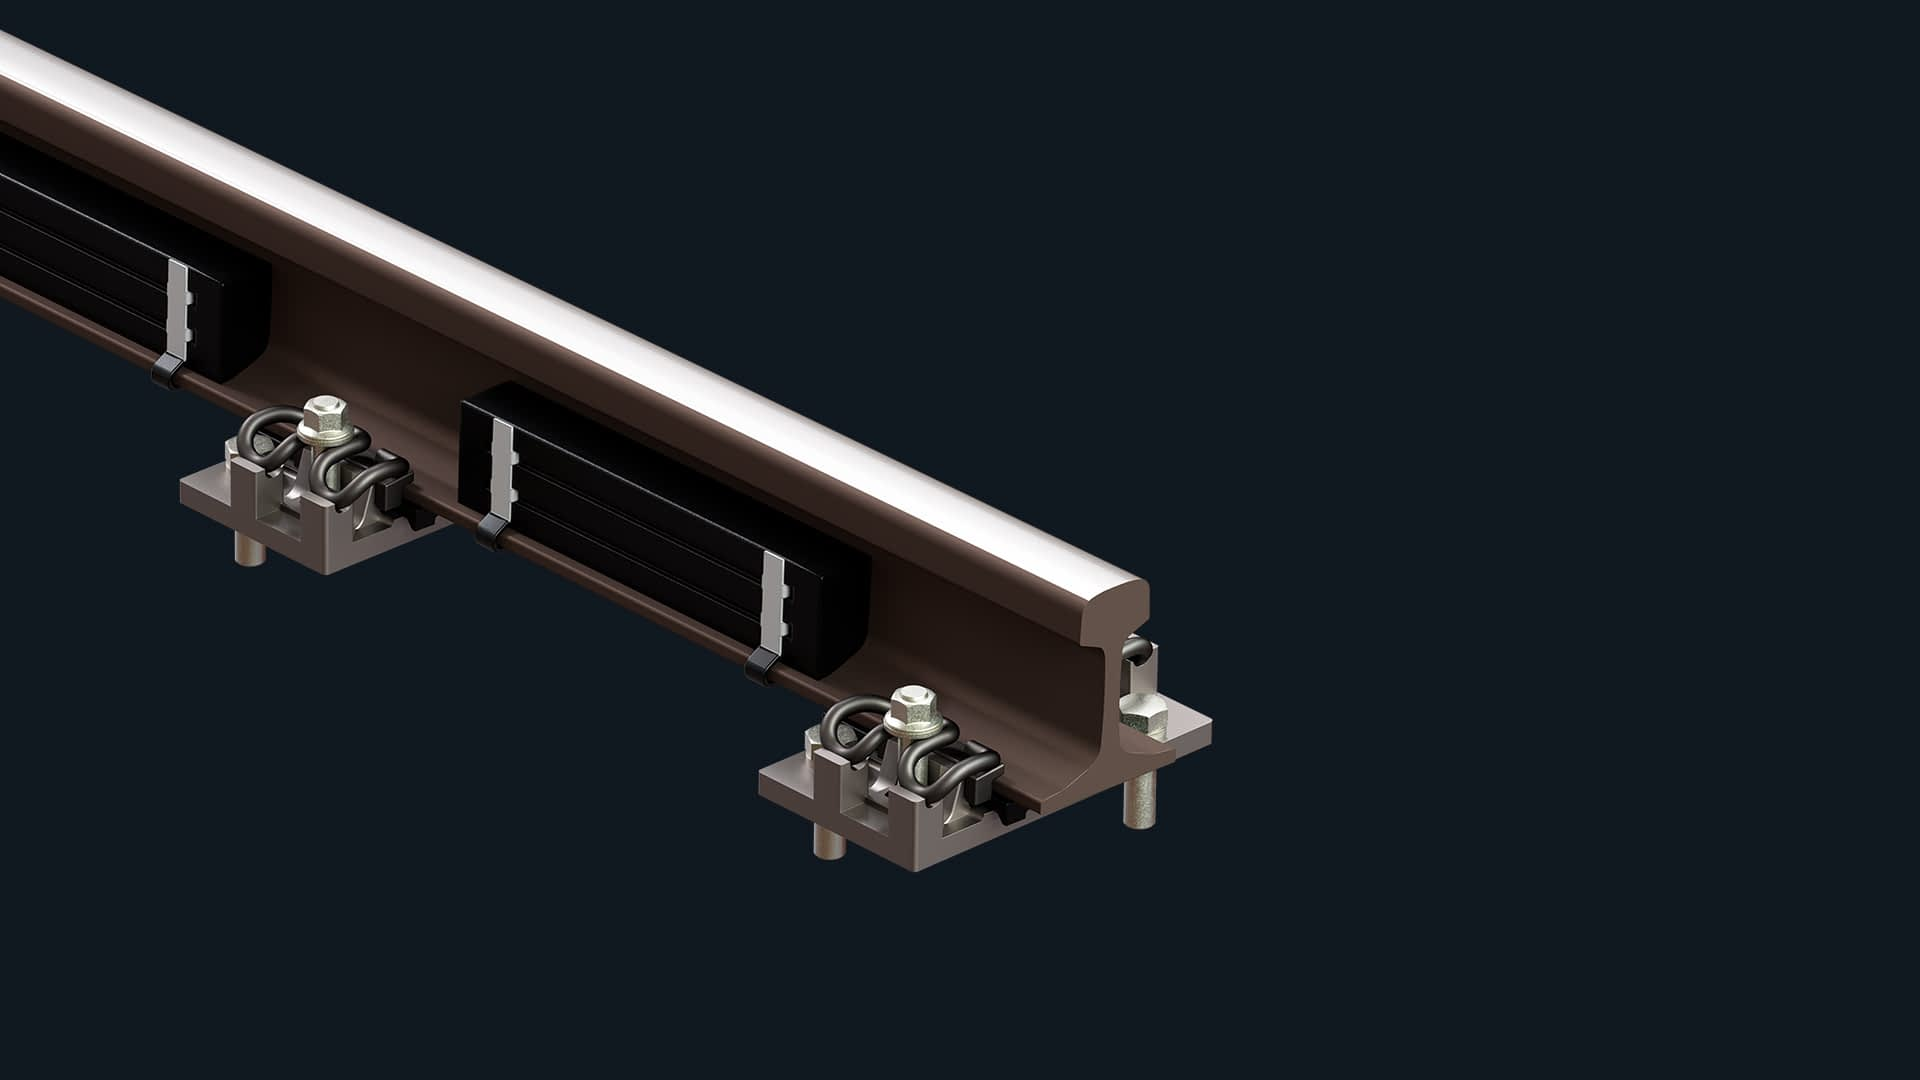 tiantie-group_products_rail-damper_1920x1080